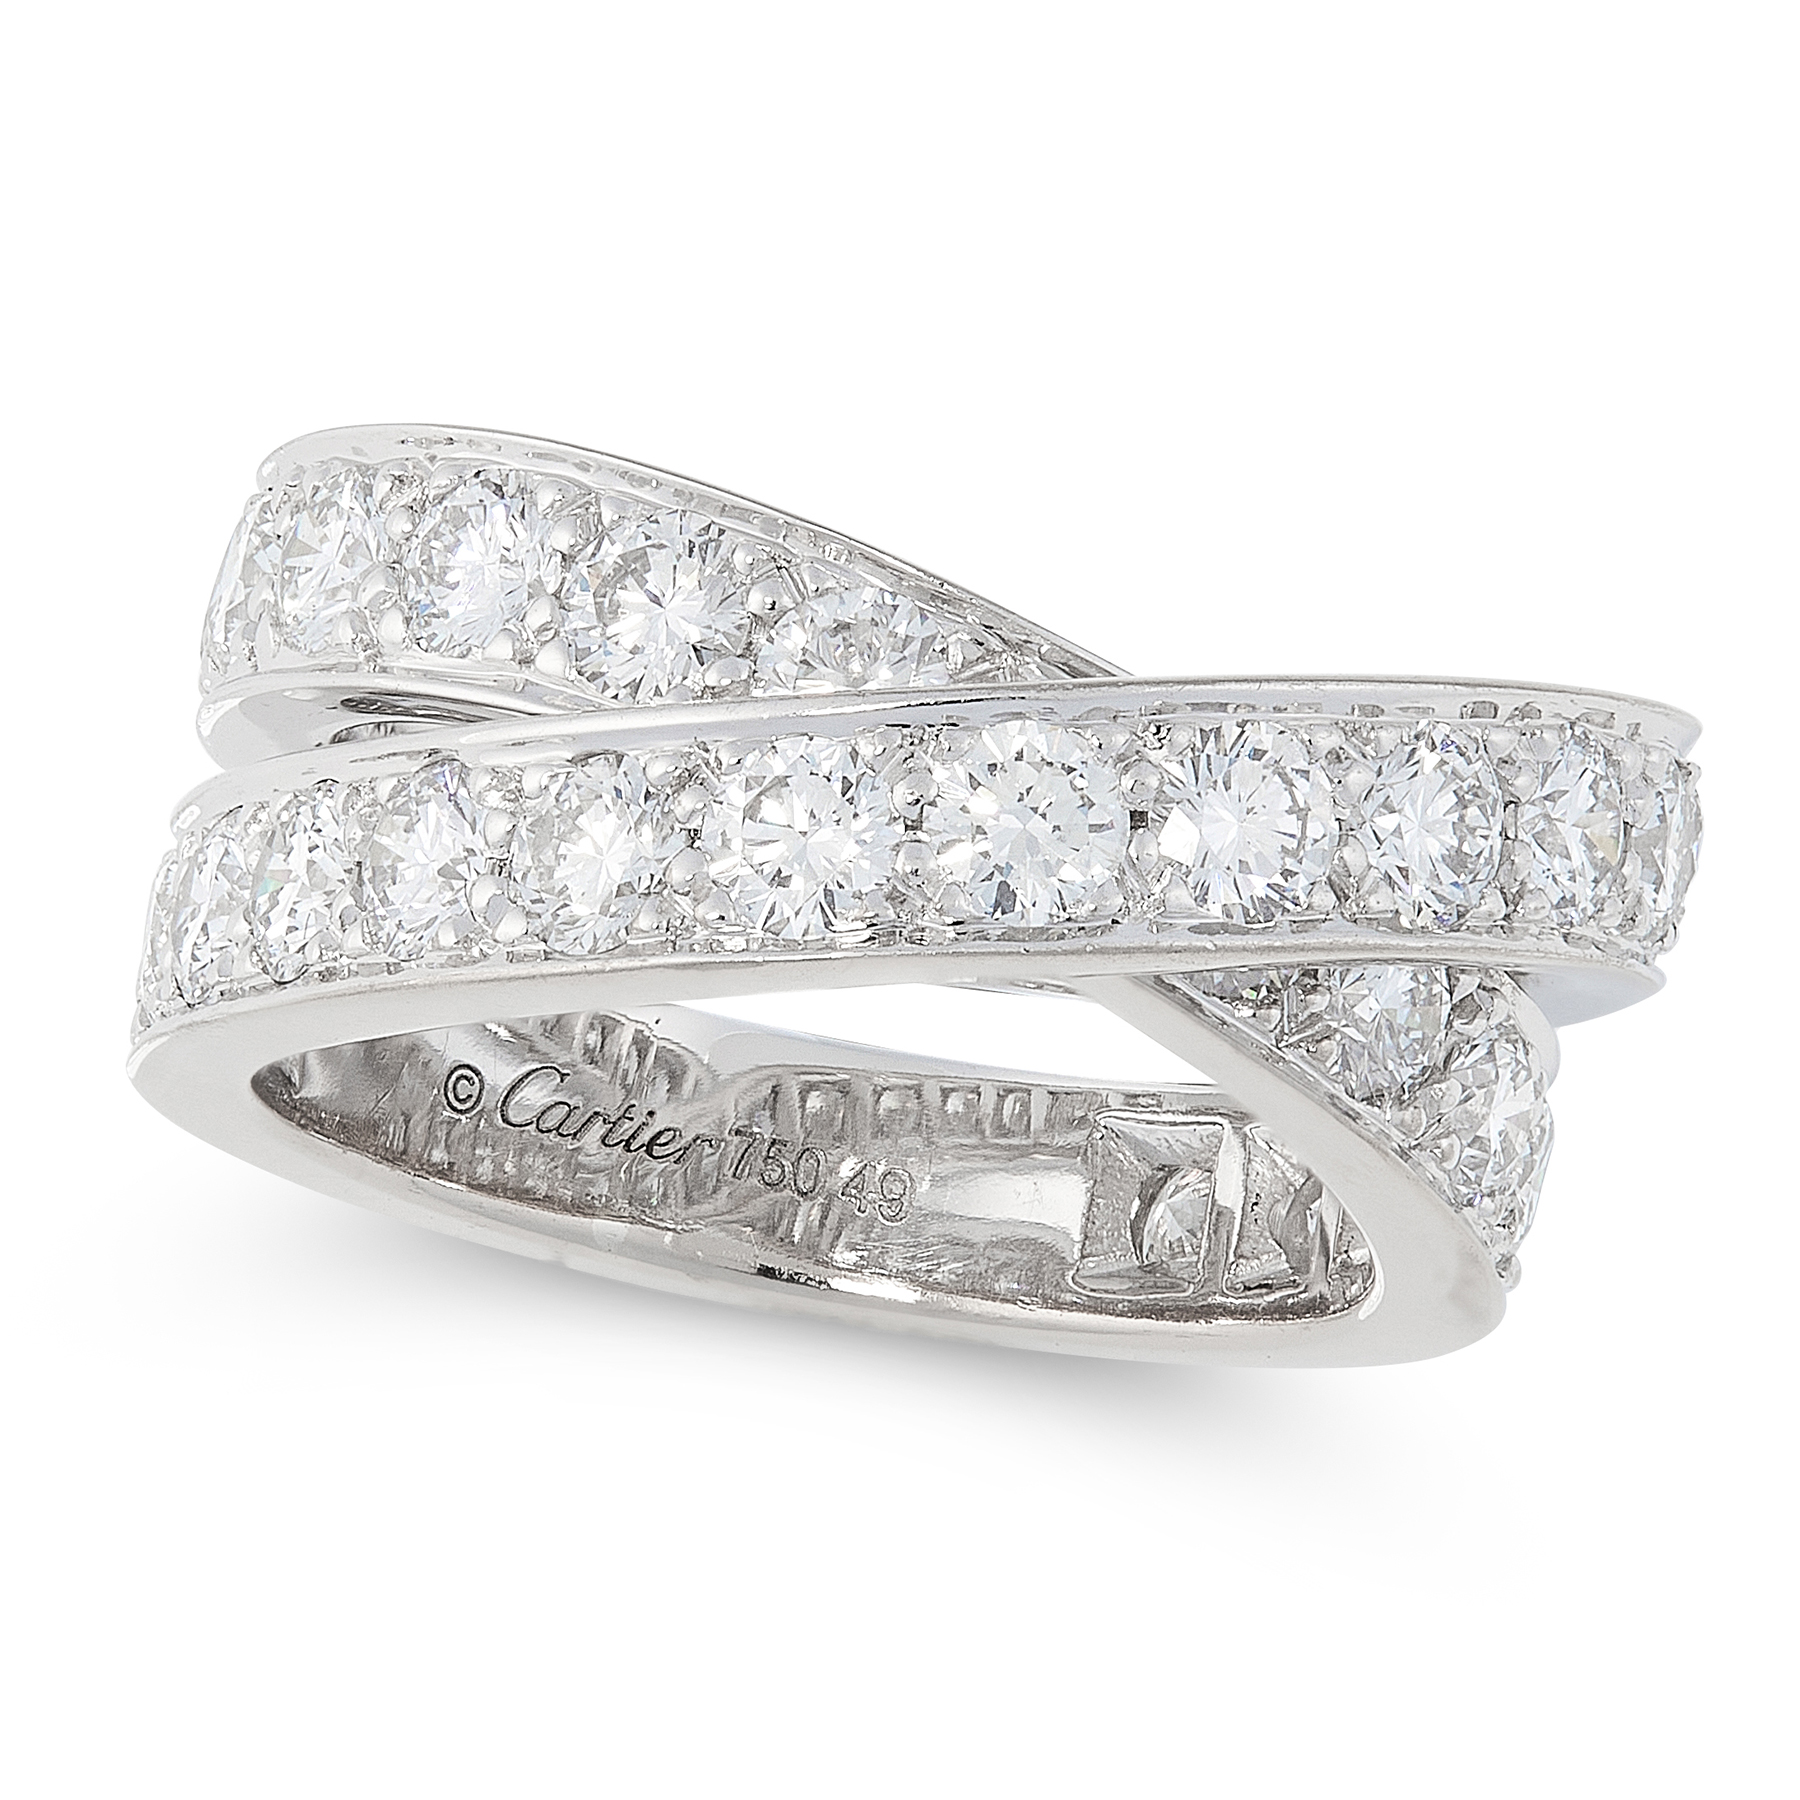 Lot 30 - A NOUVELLE VAGUE DIAMOND CROSSOVER RING, CARTIER in 18ct white gold, designed as two overlapping